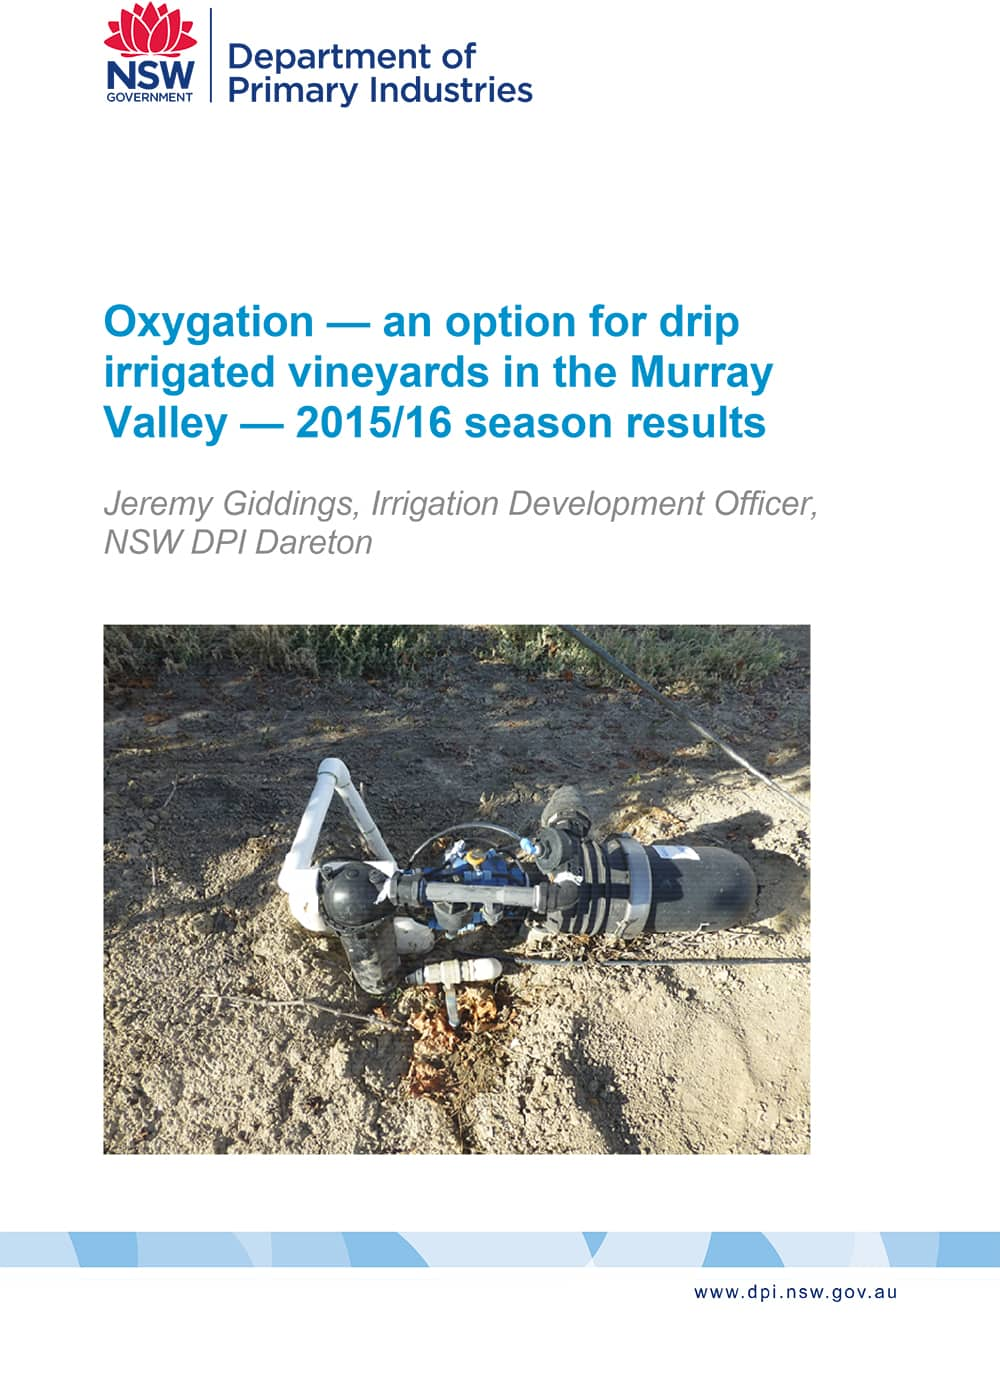 Oxygation — an option for drip irrigated vineyards in the Murray Valley